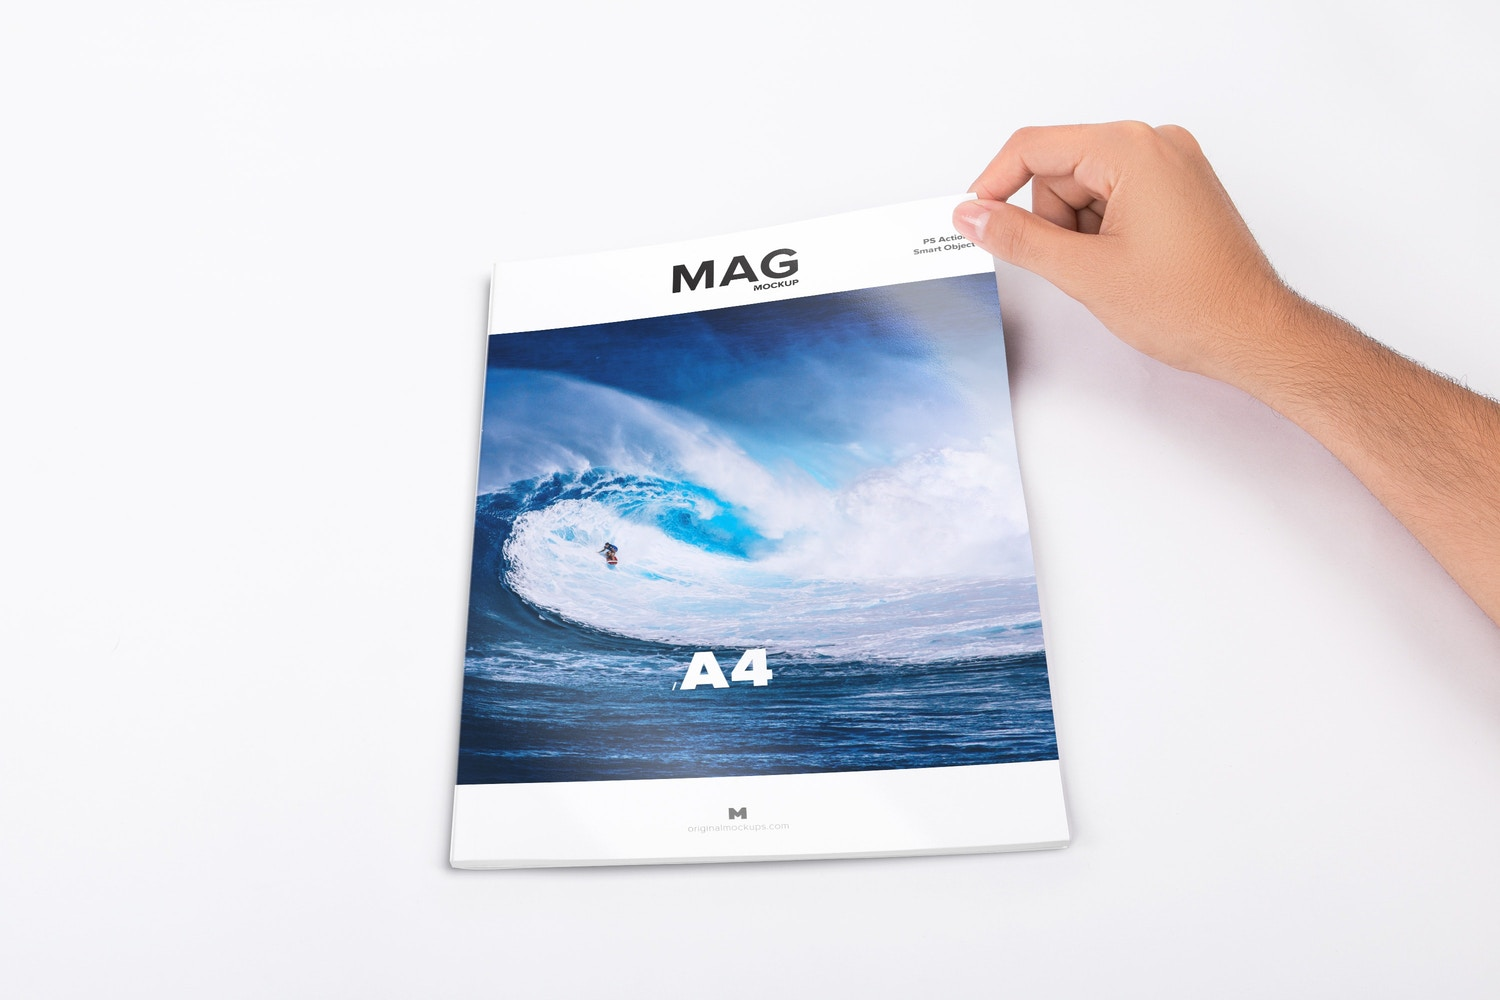 A4 Magazine Closed Mockup 02 by Original Mockups on Original Mockups